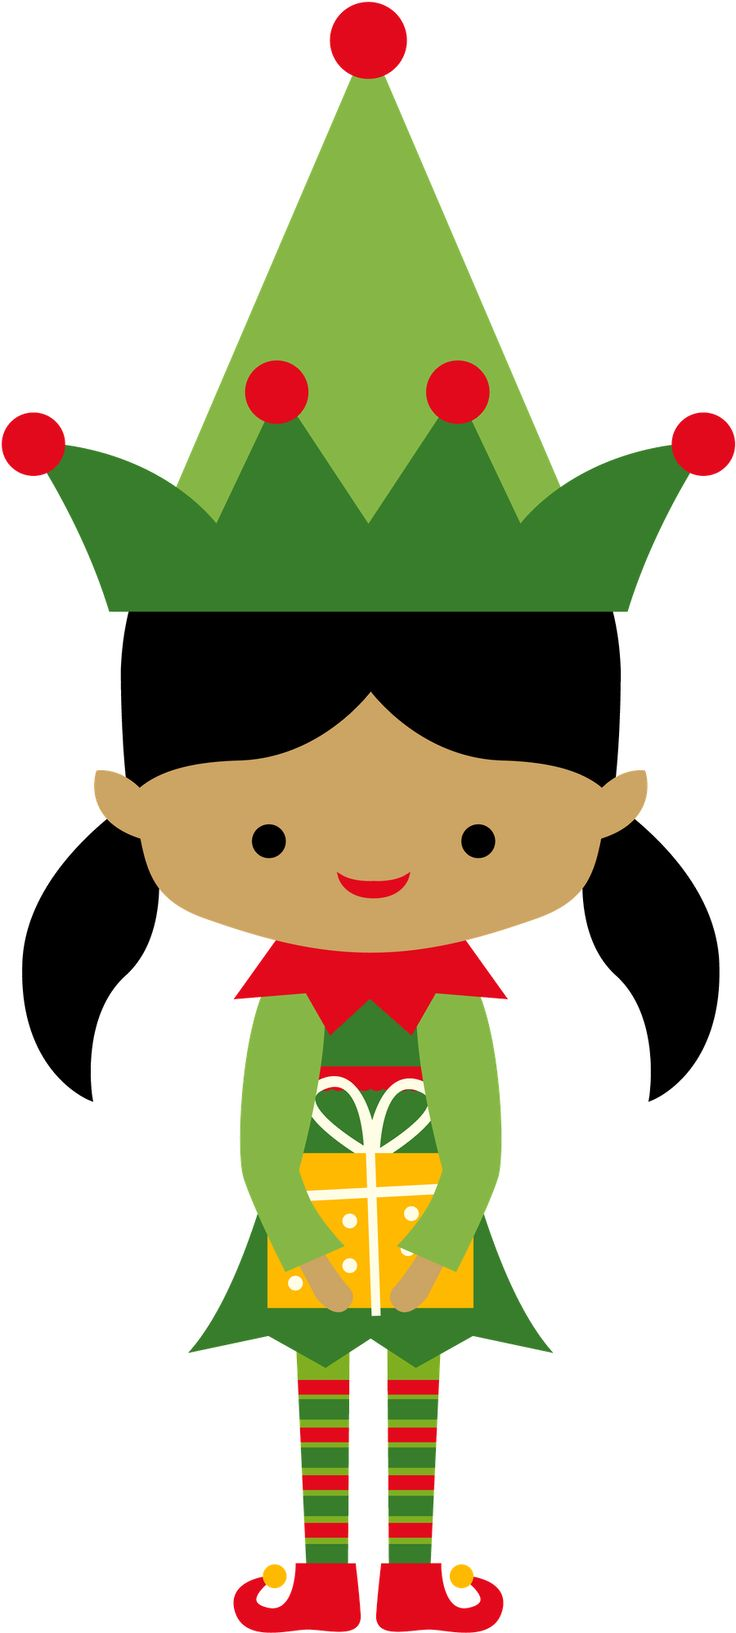 Cute Christmas Elf Clipart at GetDrawings.com.